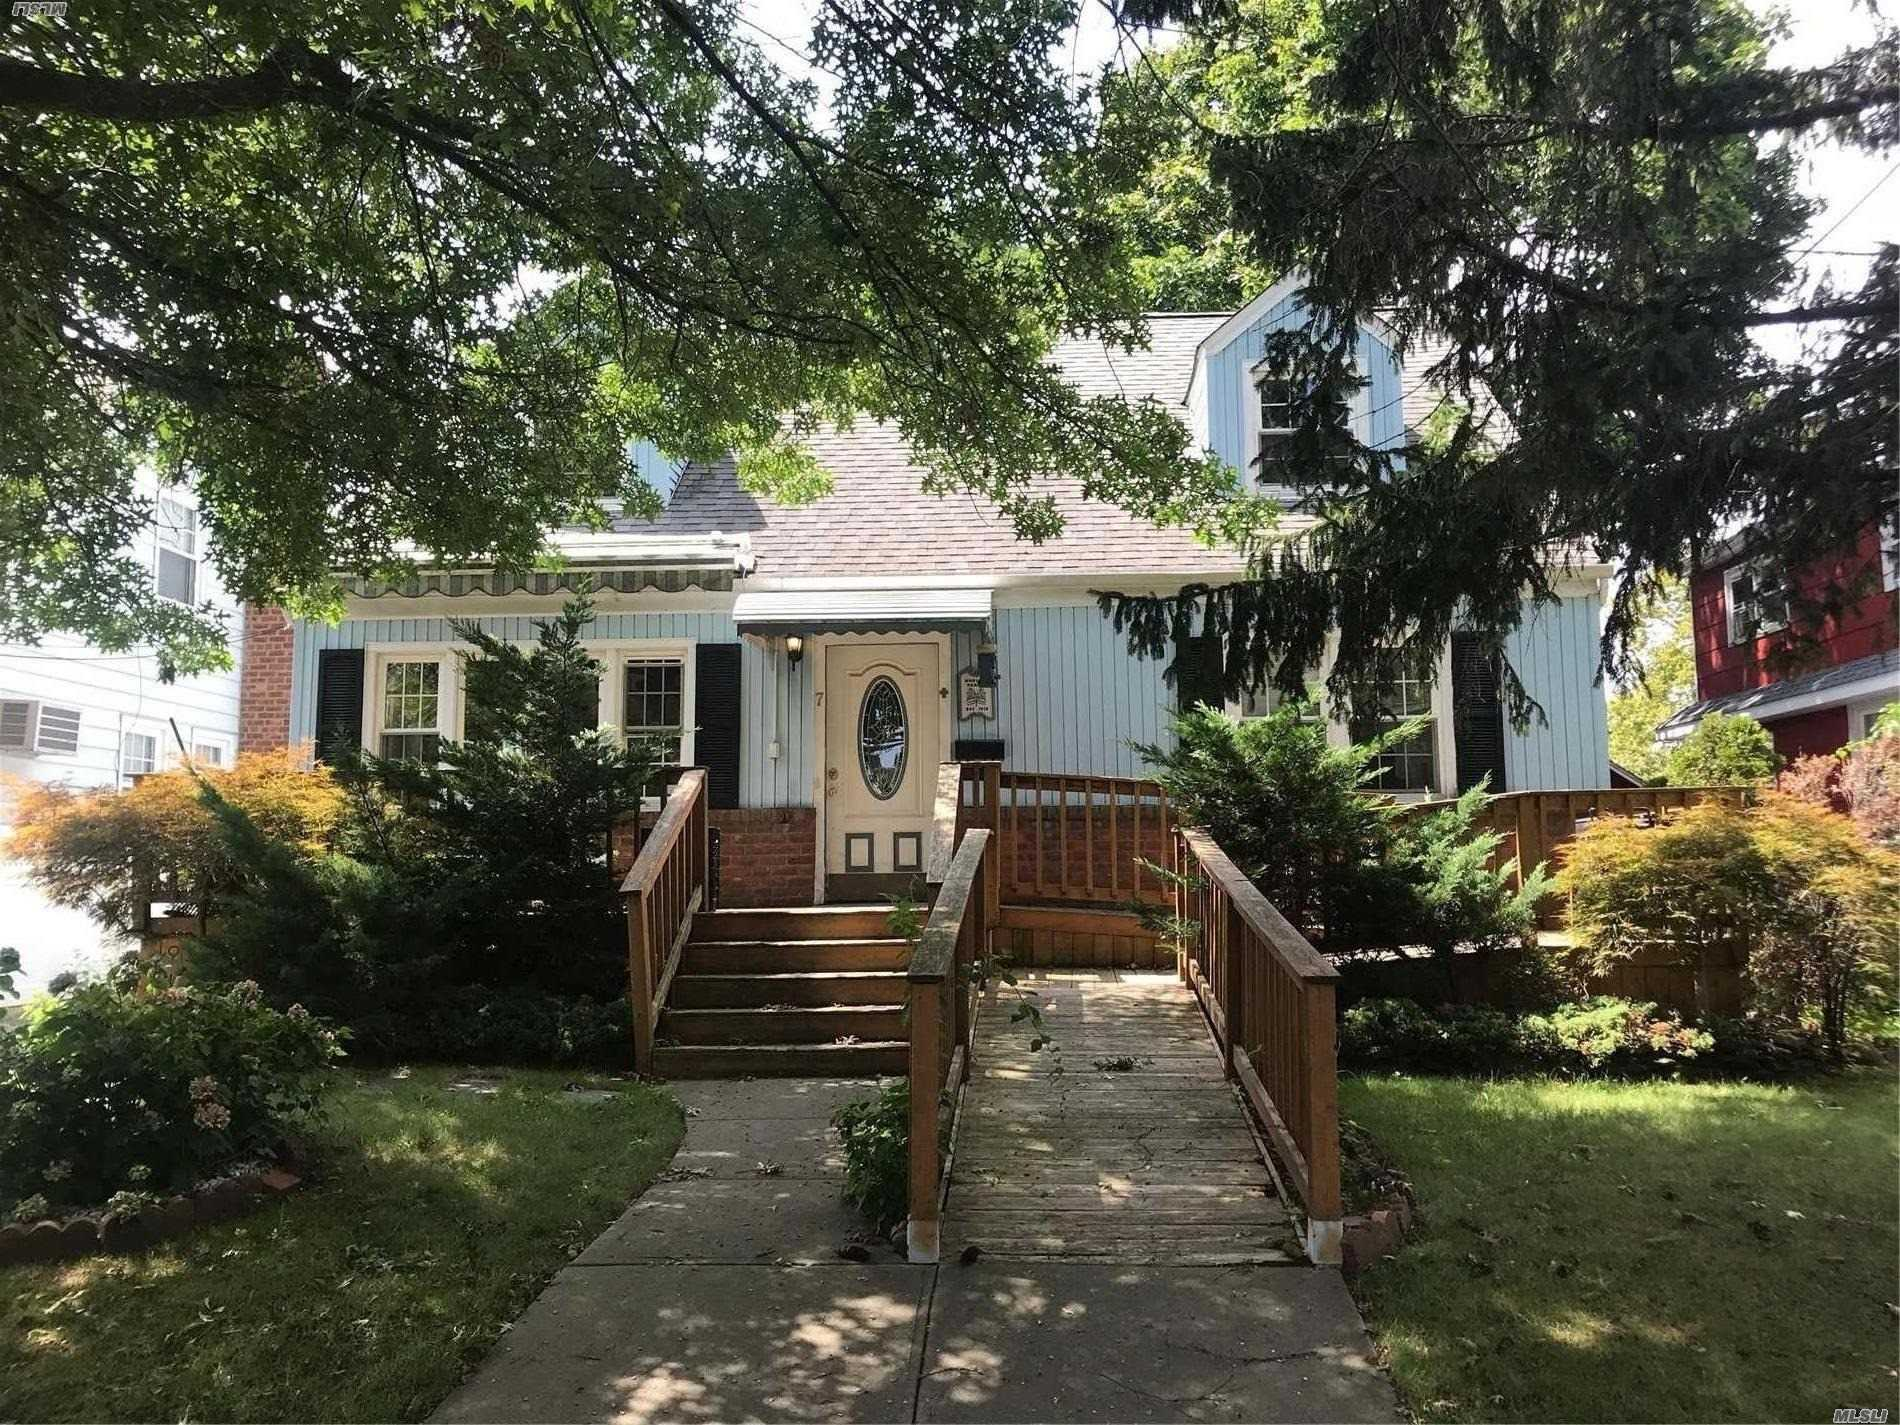 Great Expanded Cape Featuring 4 Bedrooms, 2 Full Baths, Hardwood Floors Throughout, Full Basement